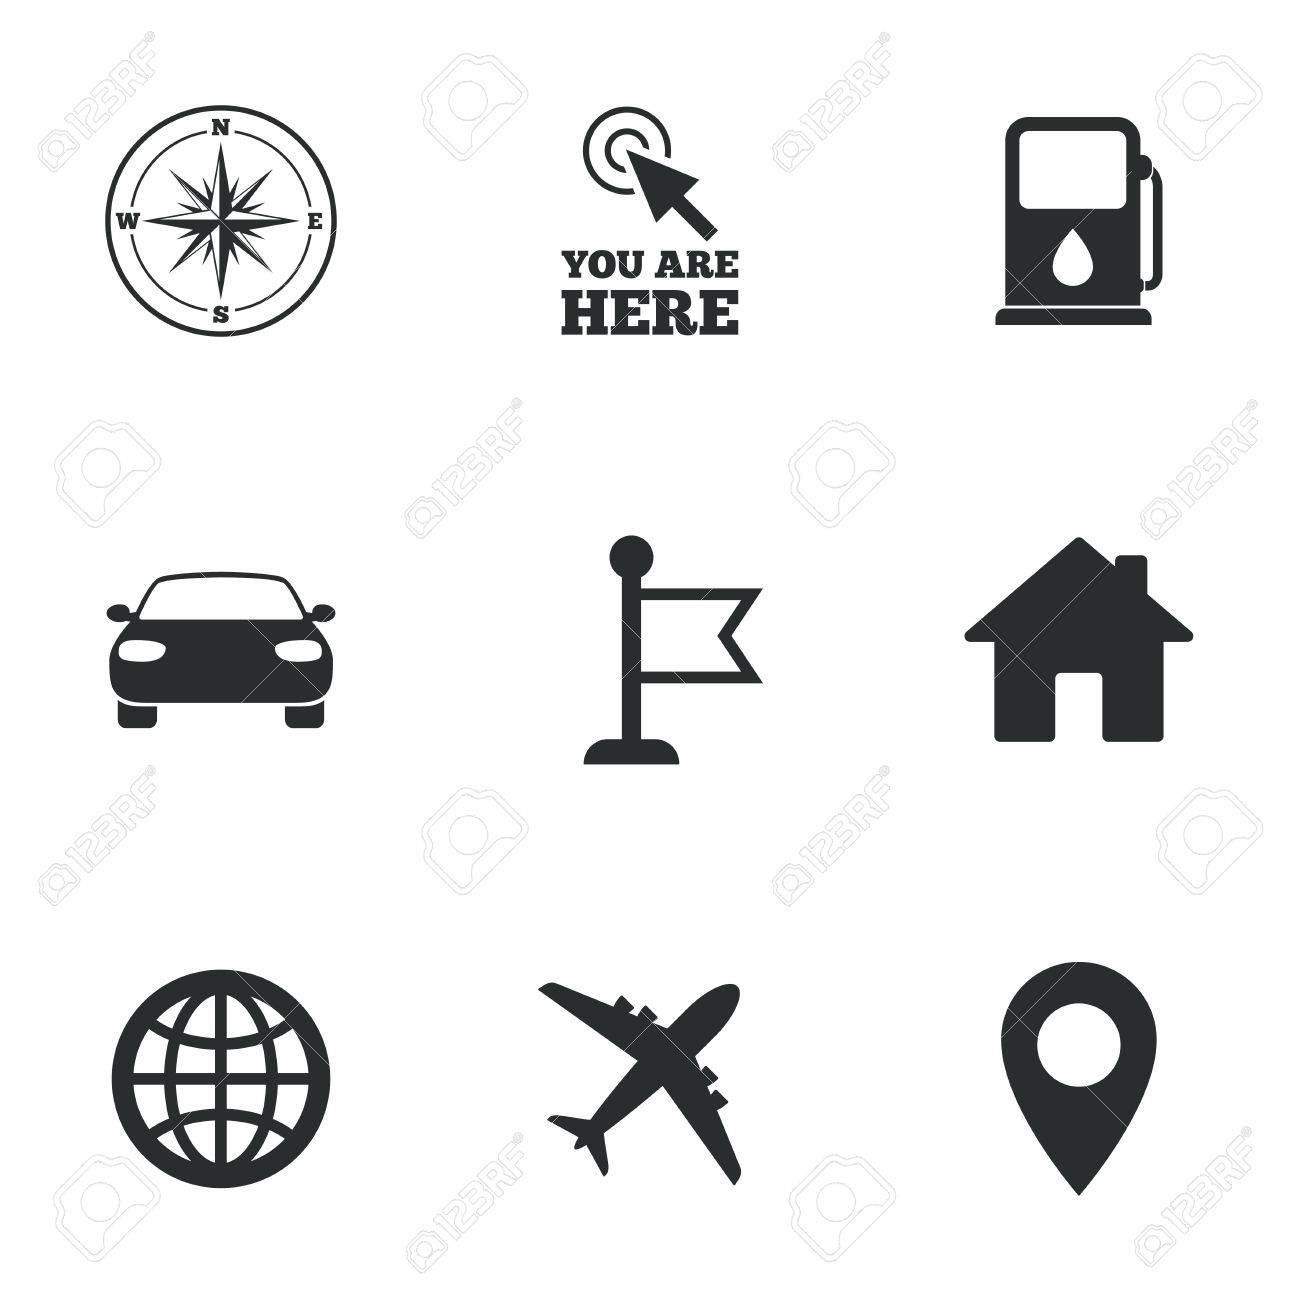 Navigation Gps Icons Windrose Compass And Map Pointer Signs - Car signs and symbols